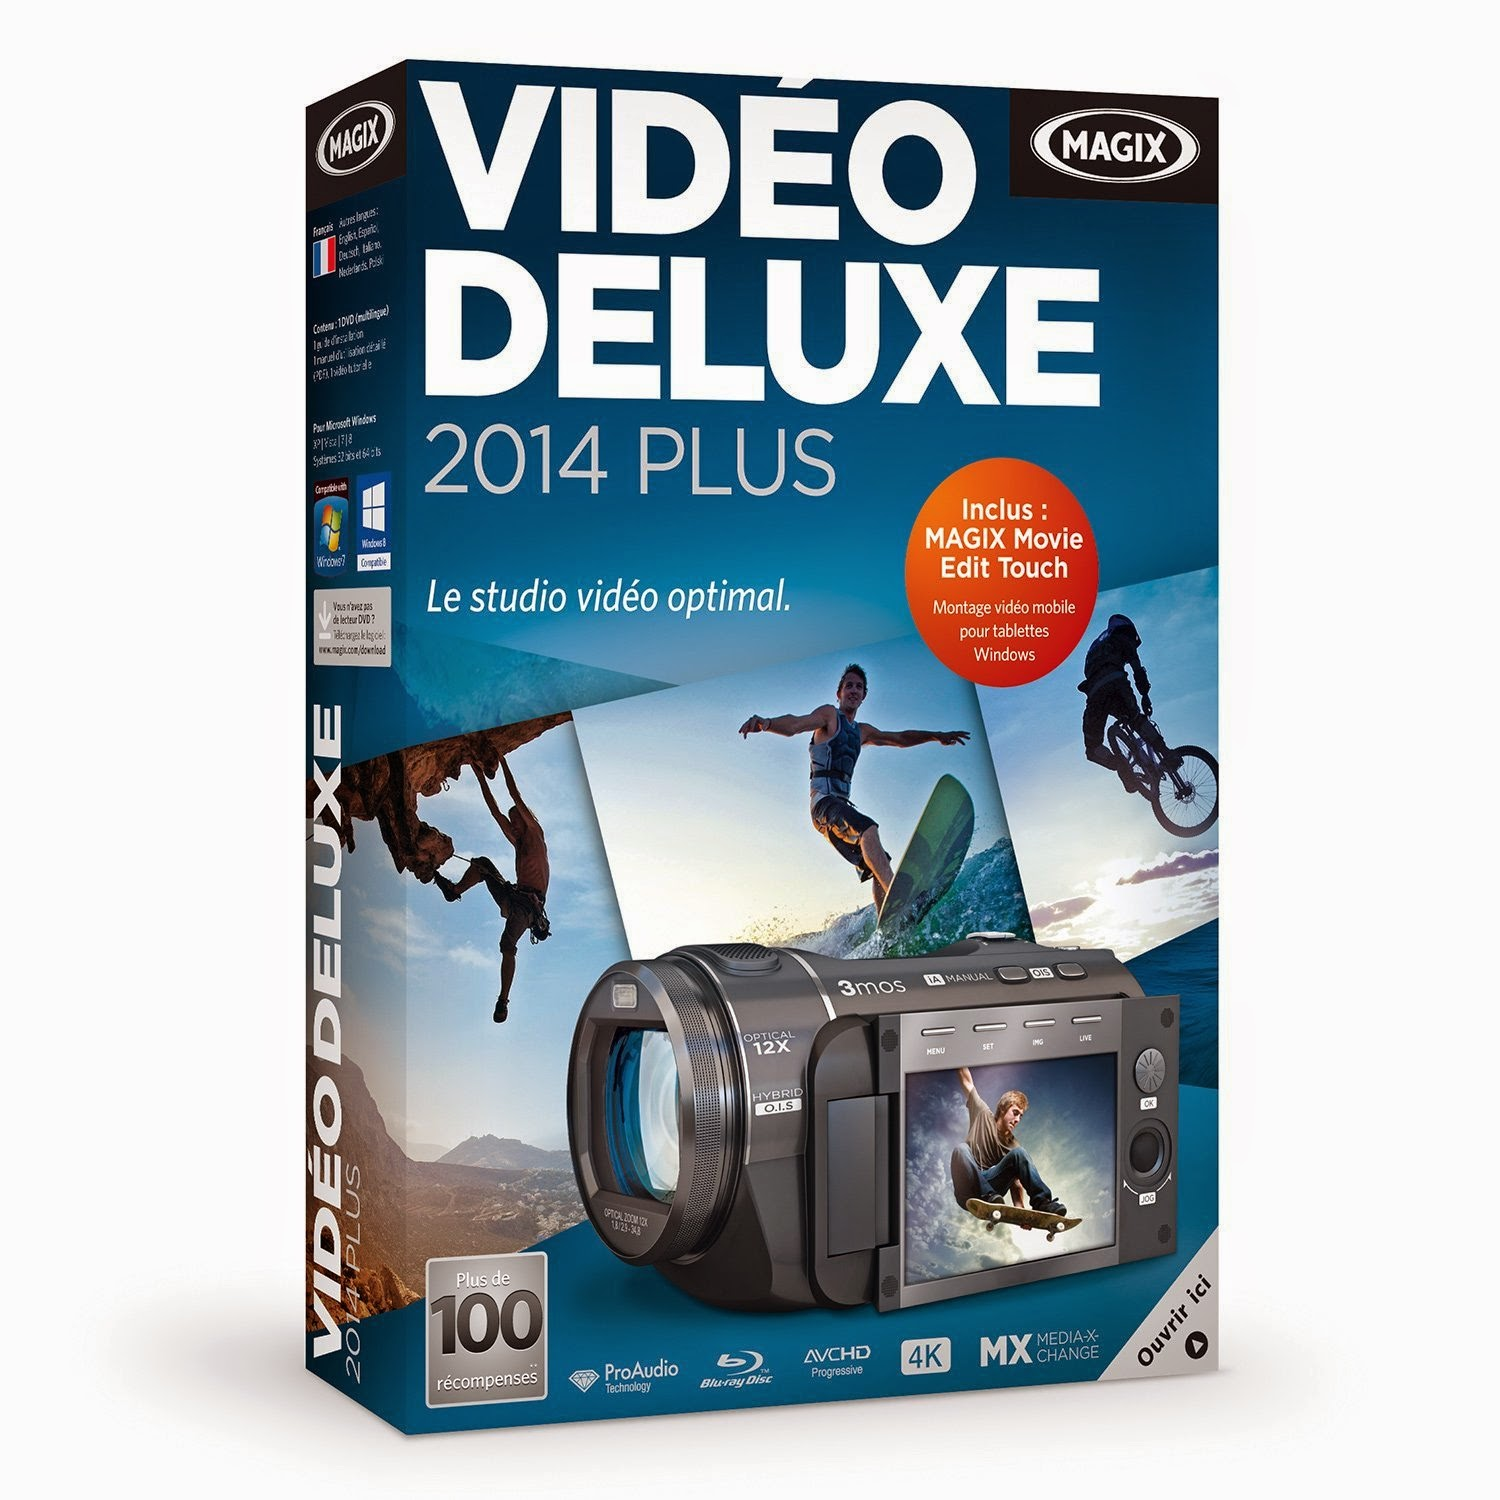 Photo Studio Gratuit Français Magix Vidéo Deluxe Plus 2014 Inclus Crack 43 Keygen Inclus